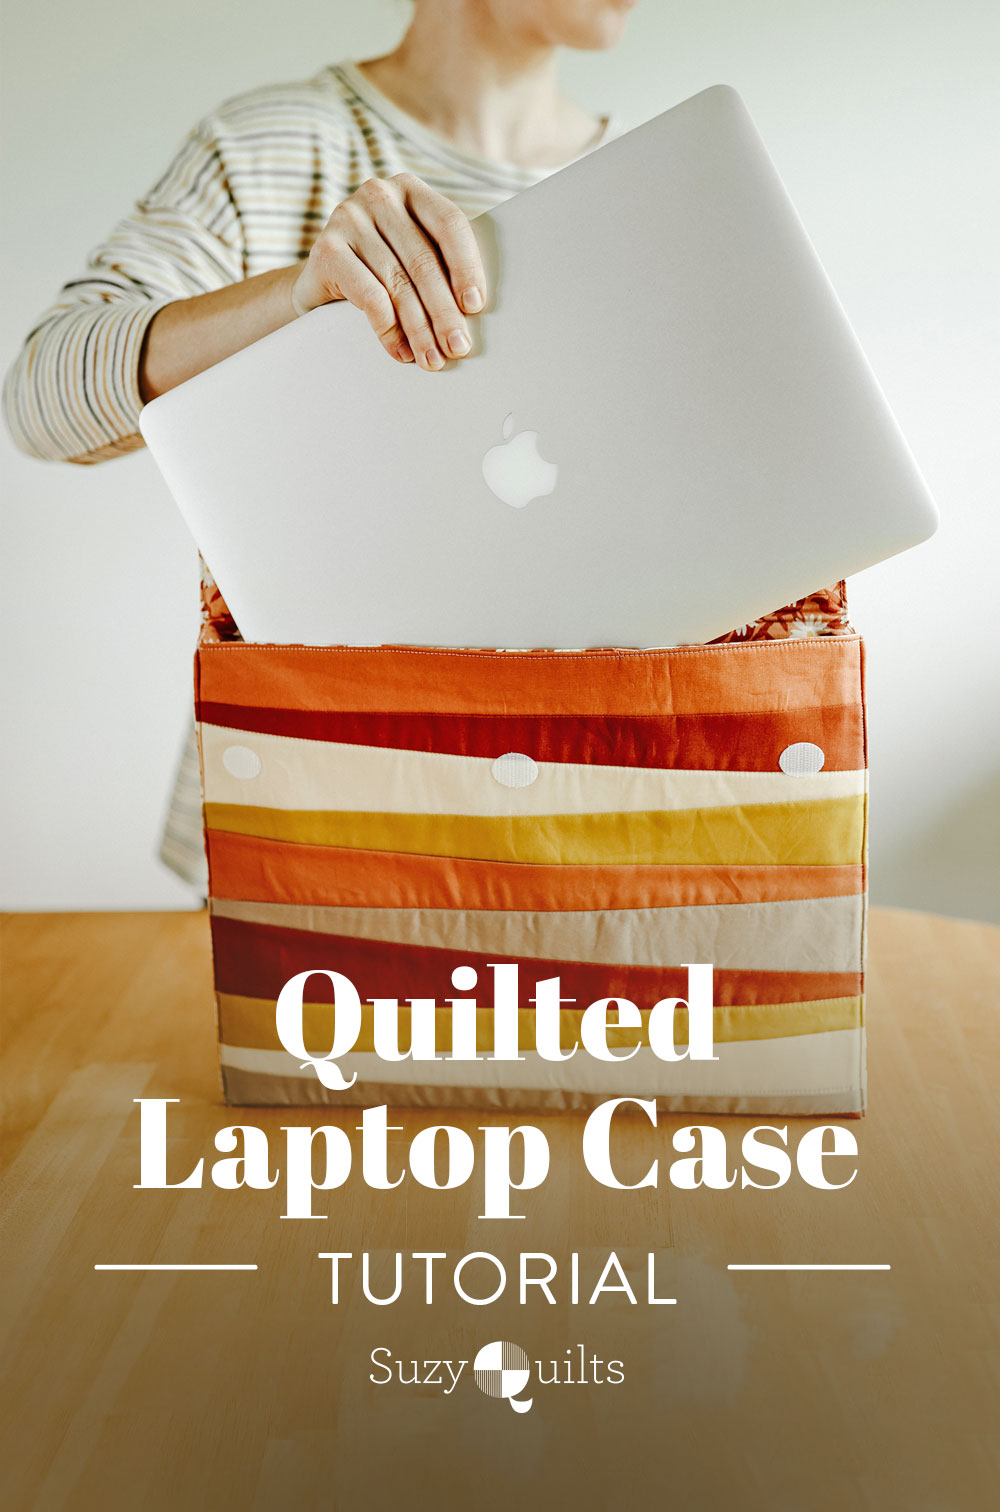 Learn to sew a beginner-friendly quilted laptop case in this tutorial featuring the Shine quilt block by Suzy Quilts. suzyquilts.com #sewingdiy #quilting